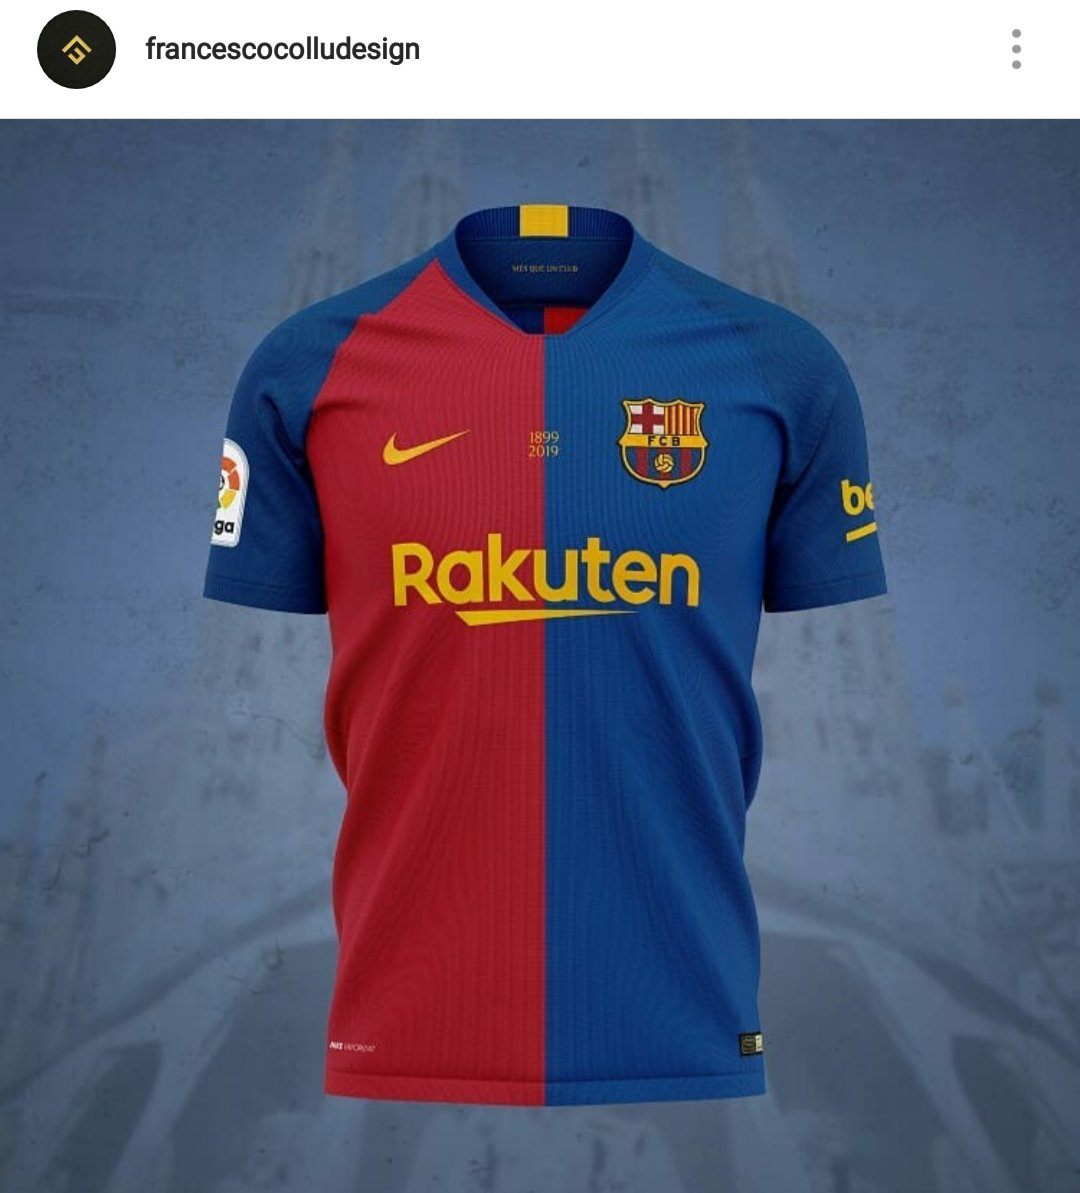 51ca9a3654f Barcelona 2019-2020 home shirt concept. Not by me and can't find the users  Twitter handle but the Instagram is there.pic.twitter.com/wIIoFPXGhv